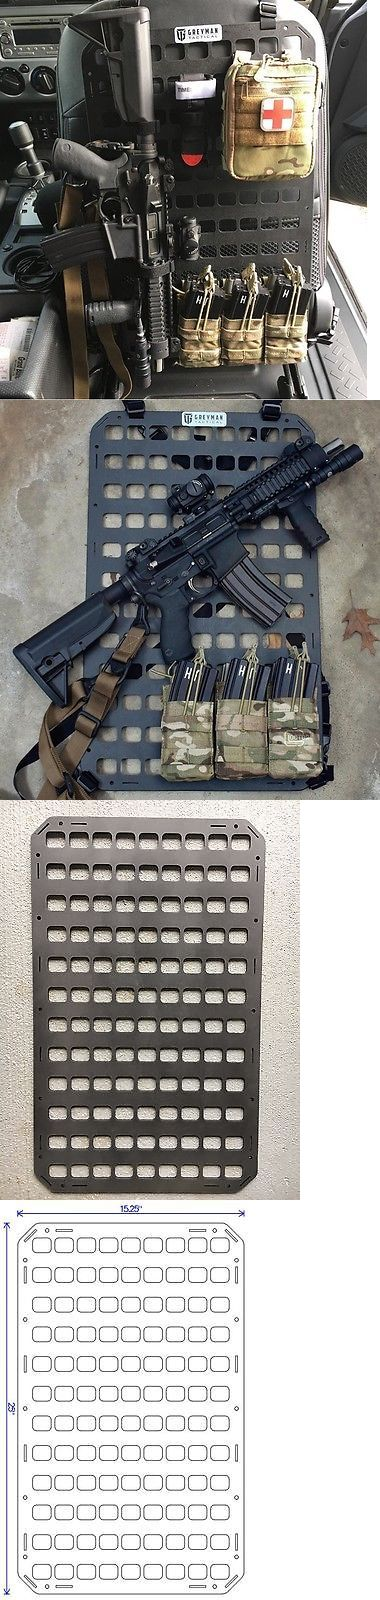 Tactical Molle Pouches 177900: Rigid Molle Panel (Rip-M) 15.25In X 25In Vehicle Seat Back, Safe, Pelican Case BUY IT NOW ONLY: $110.0